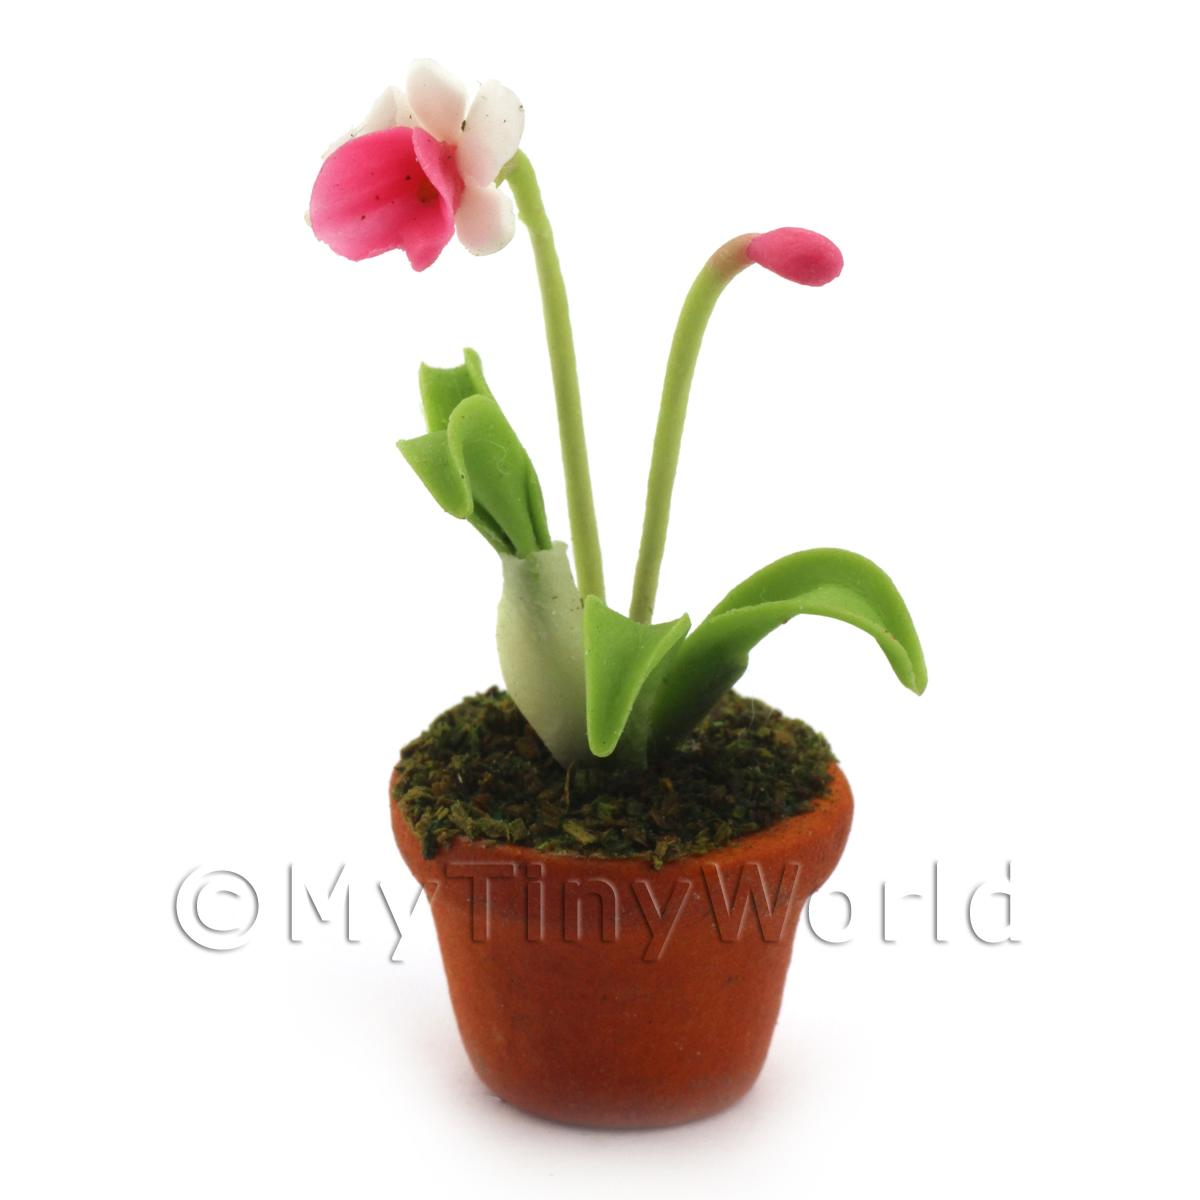 Dolls House Miniature Flowers And Plants Dolls House